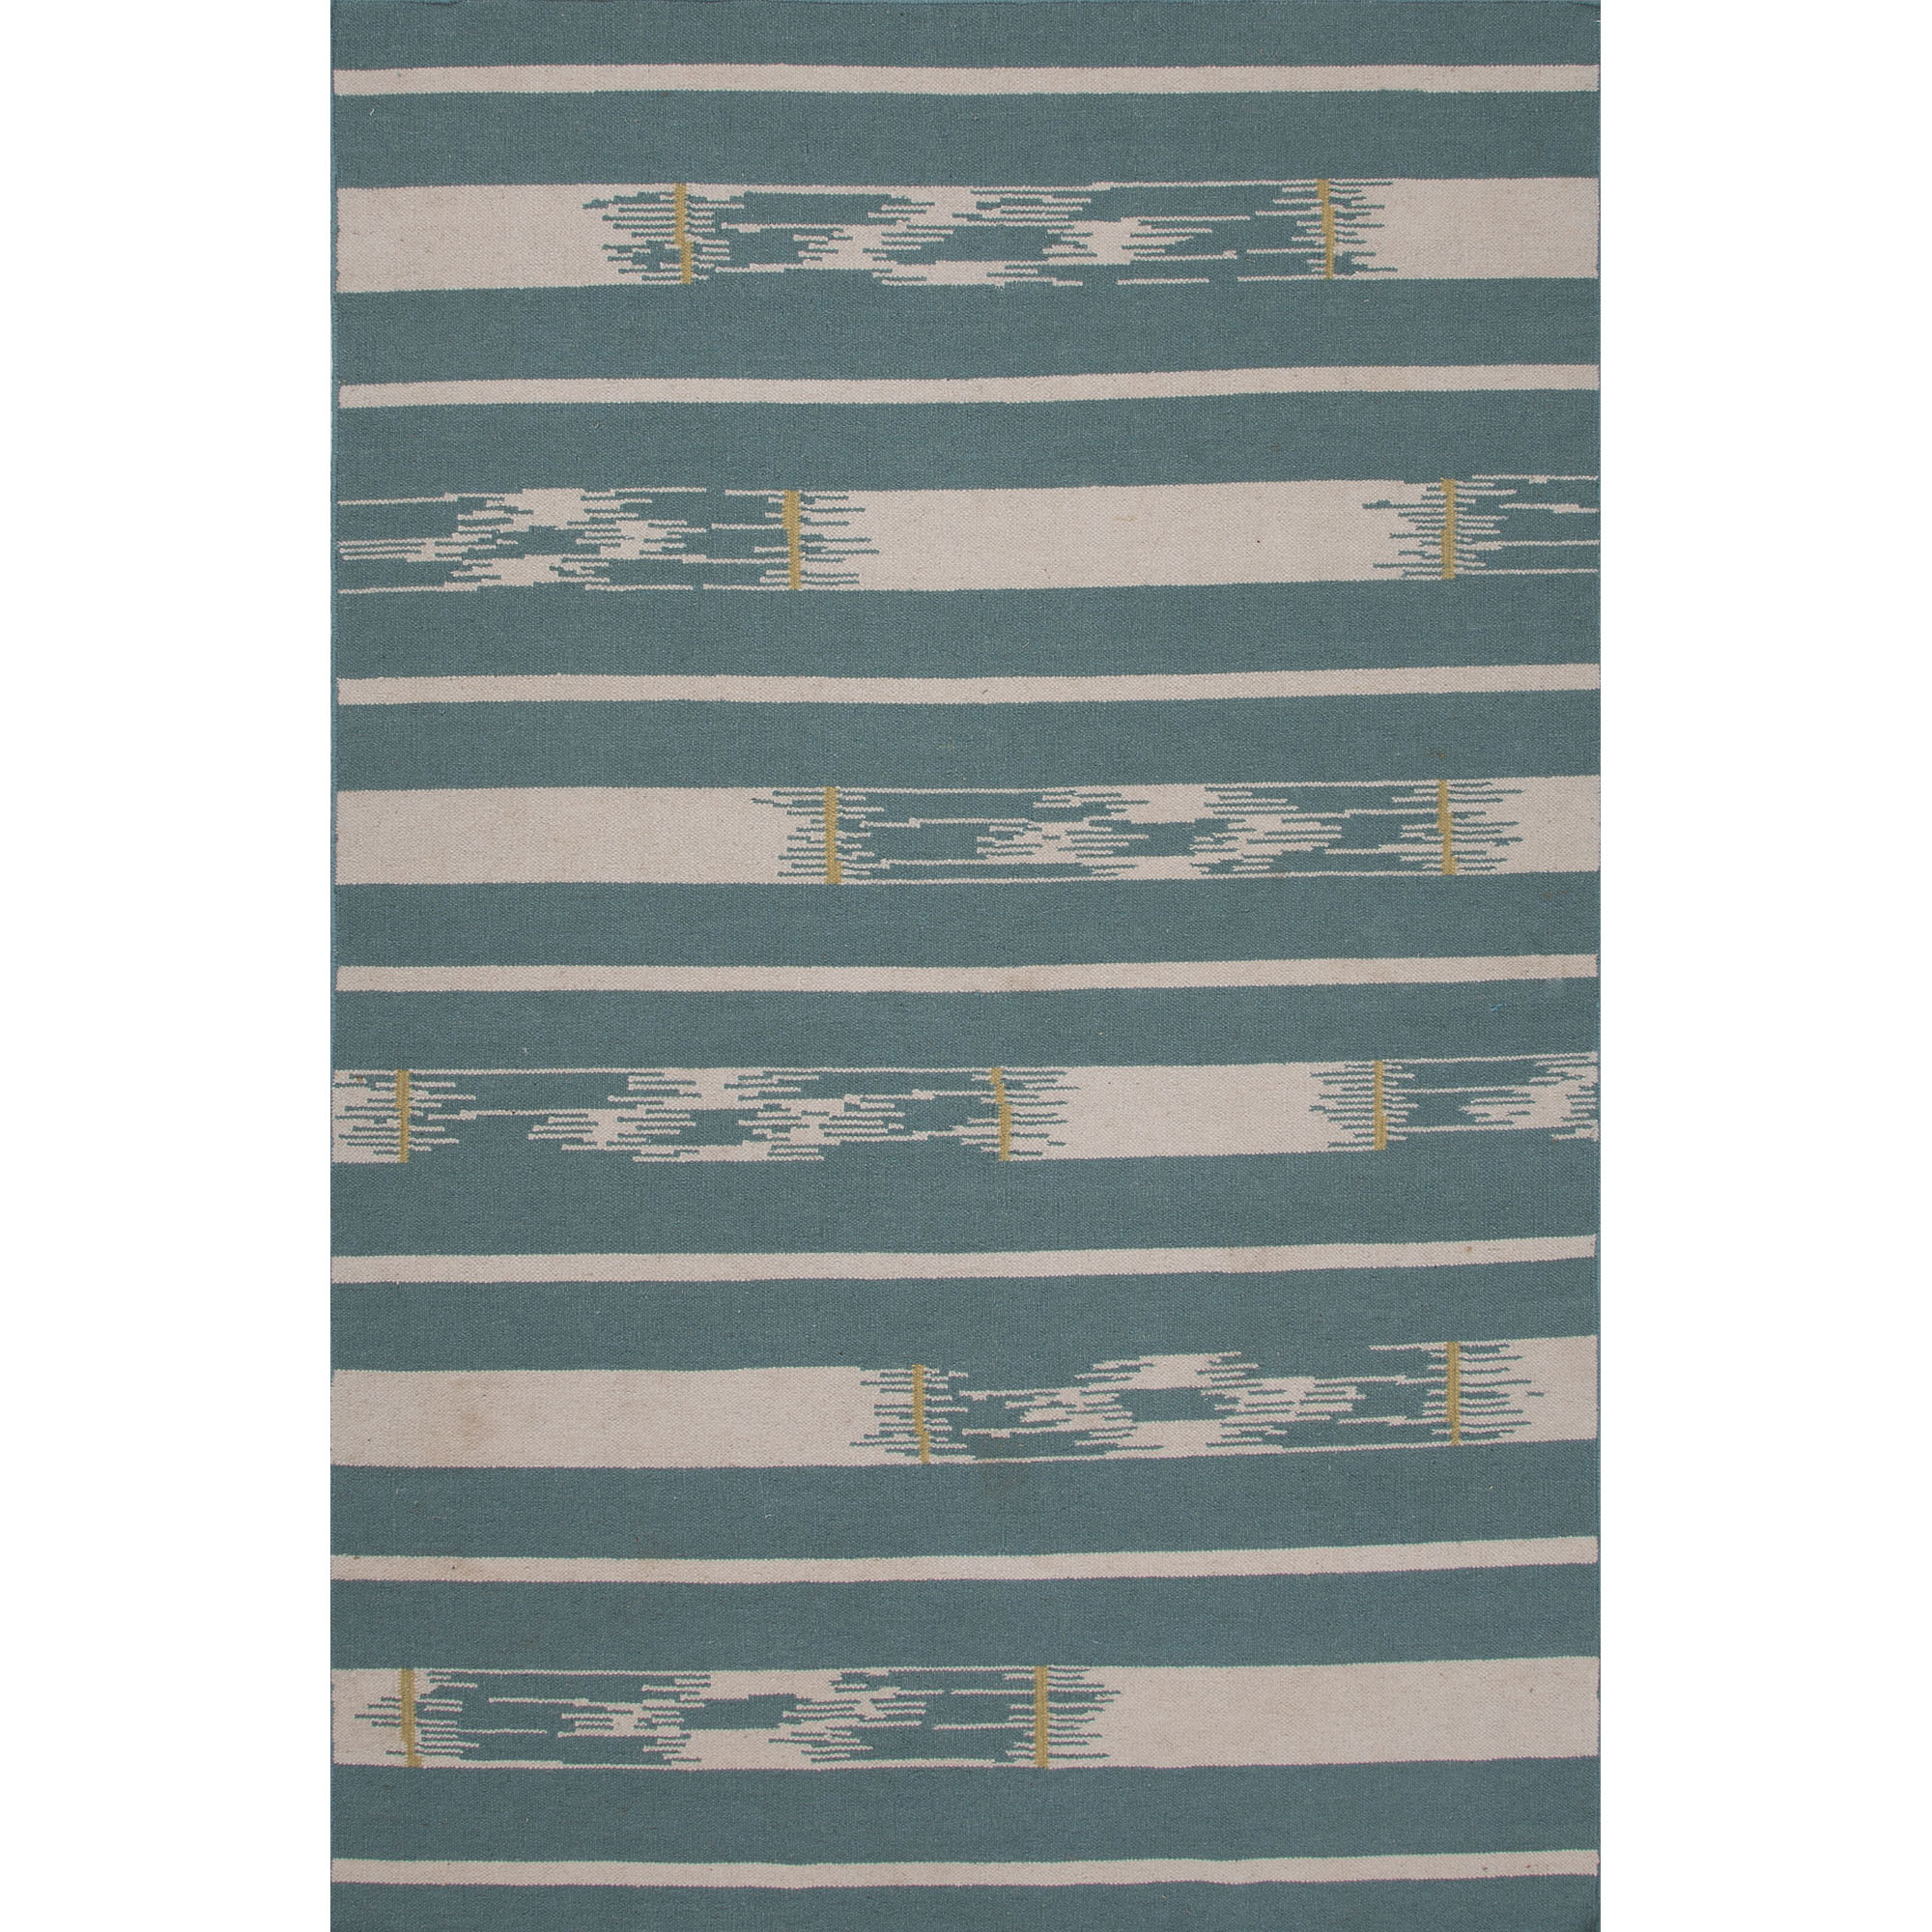 JAIPUR Rugs Traditions Modern Flat Weave 5 x 8 Rug - Item Number: RUG119844